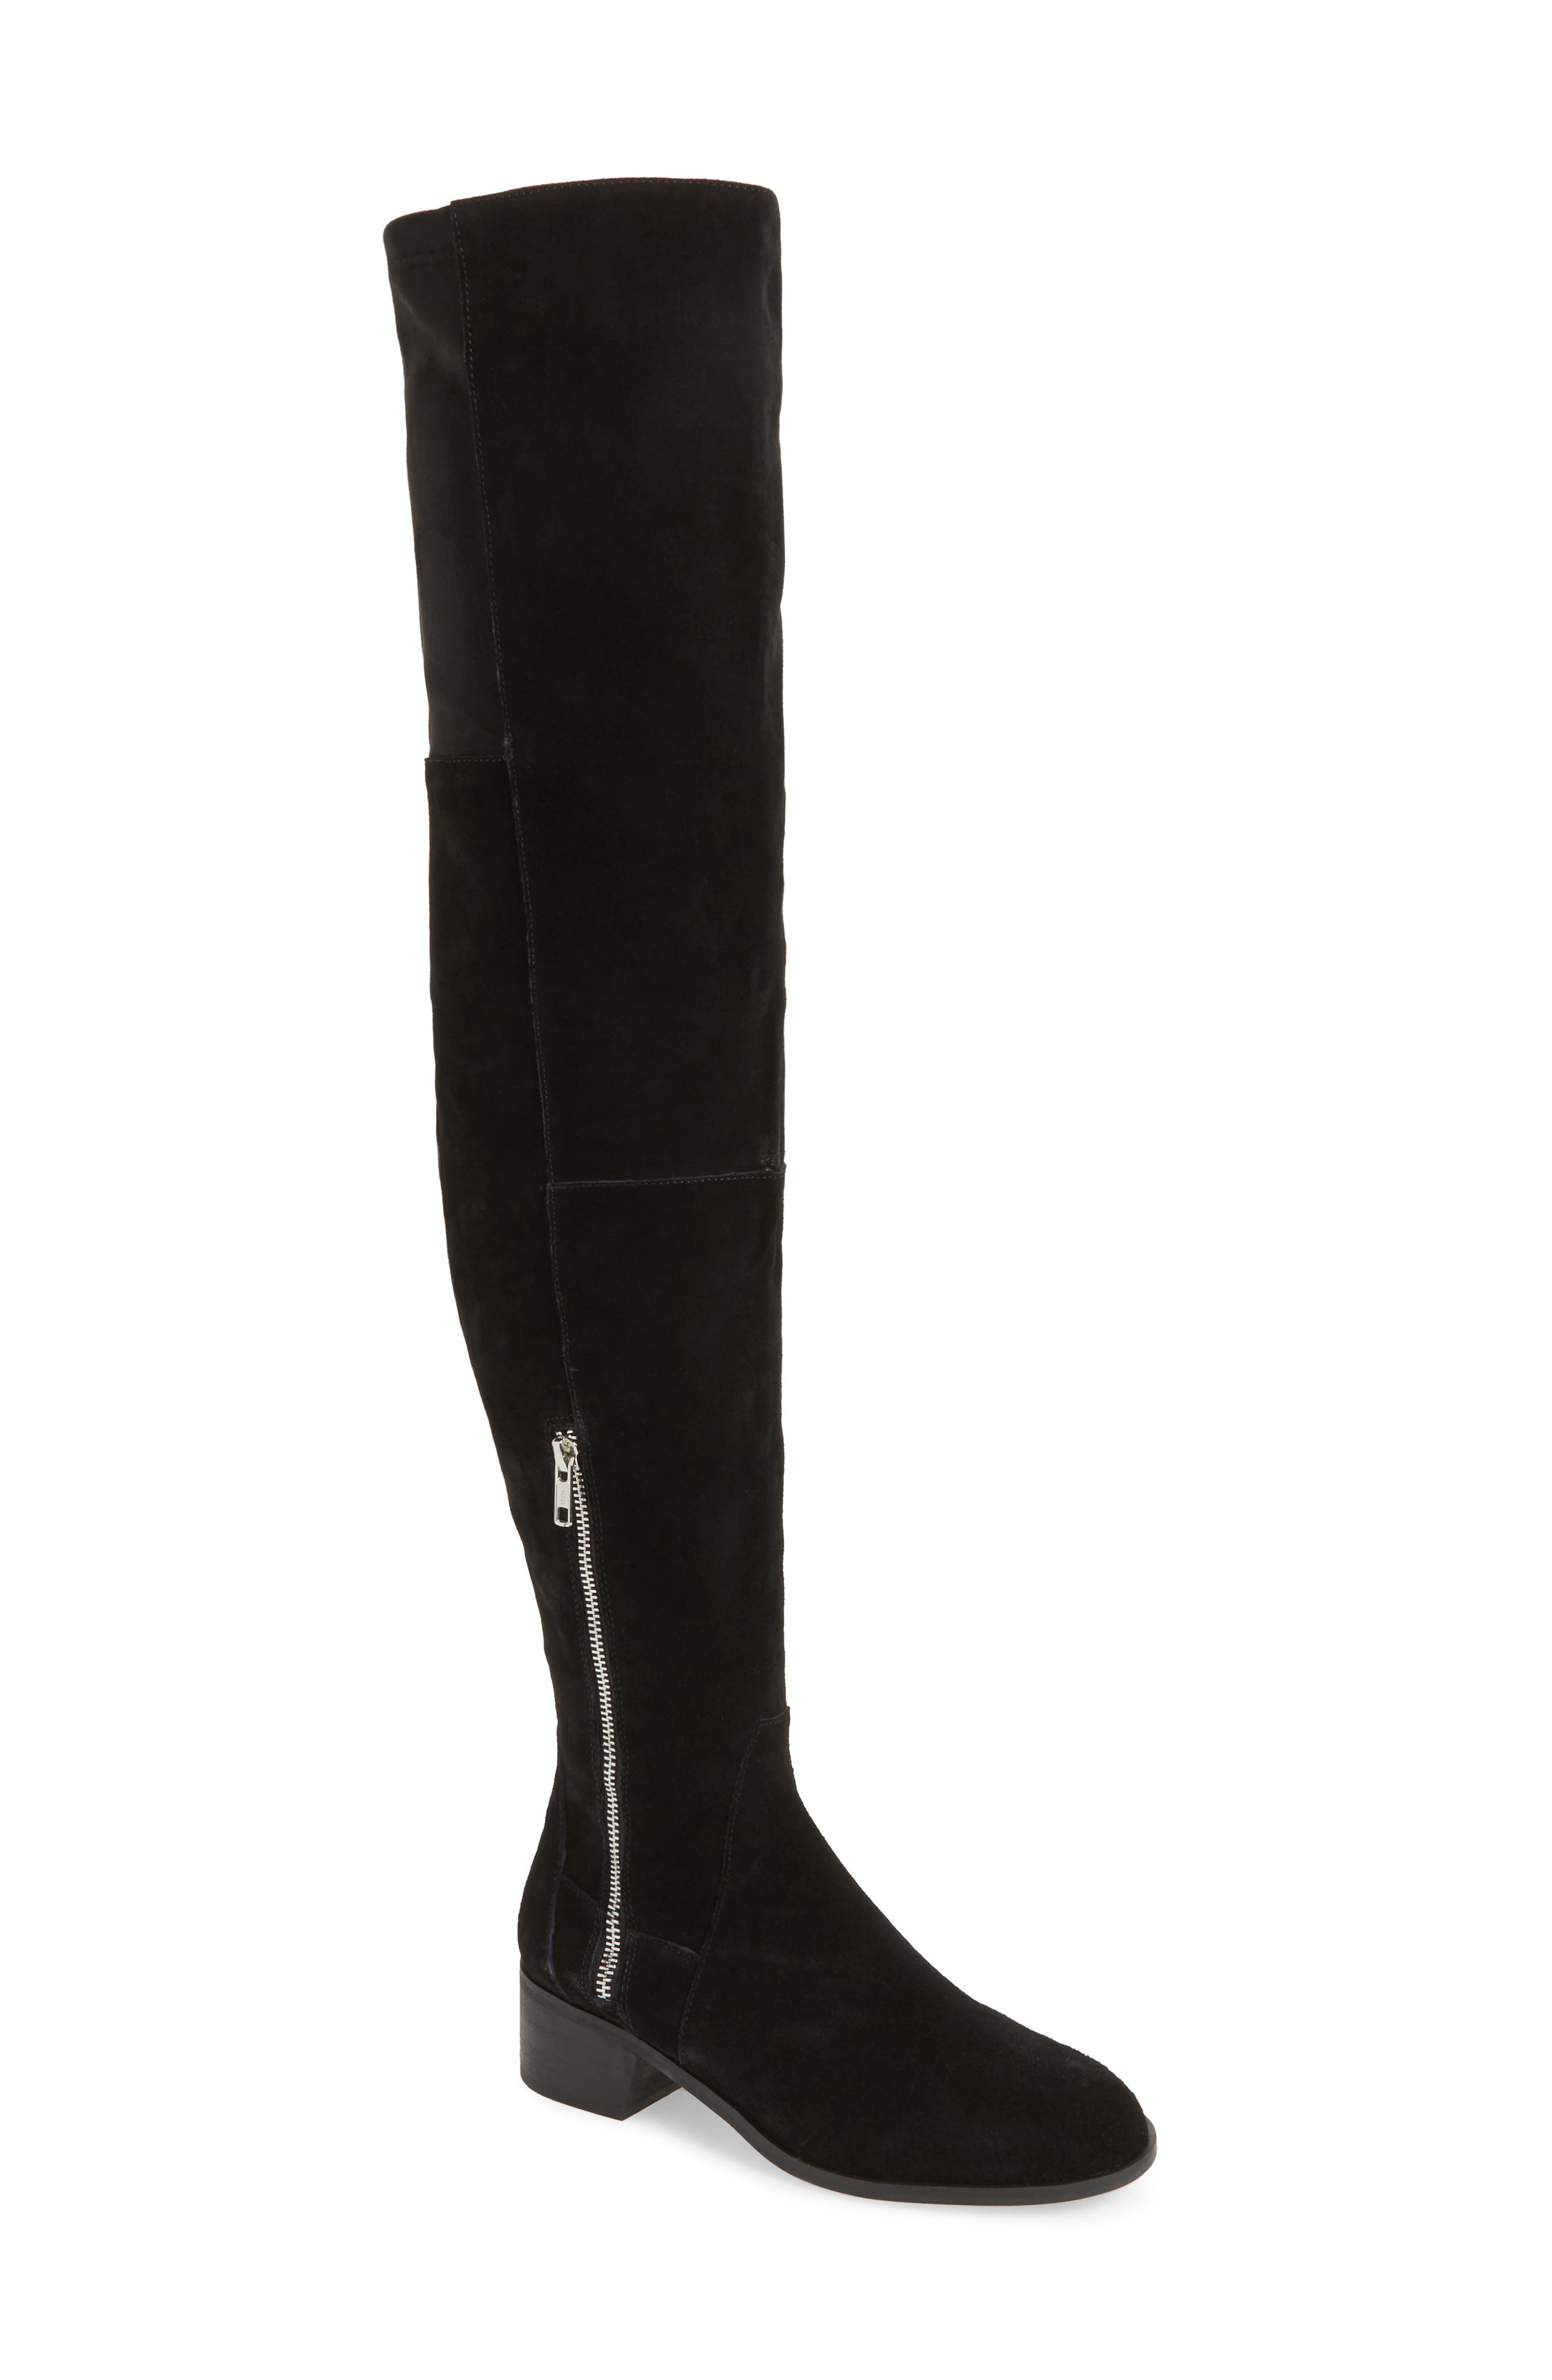 Everly Thigh High Boot,                             Main thumbnail 1, color,                             001